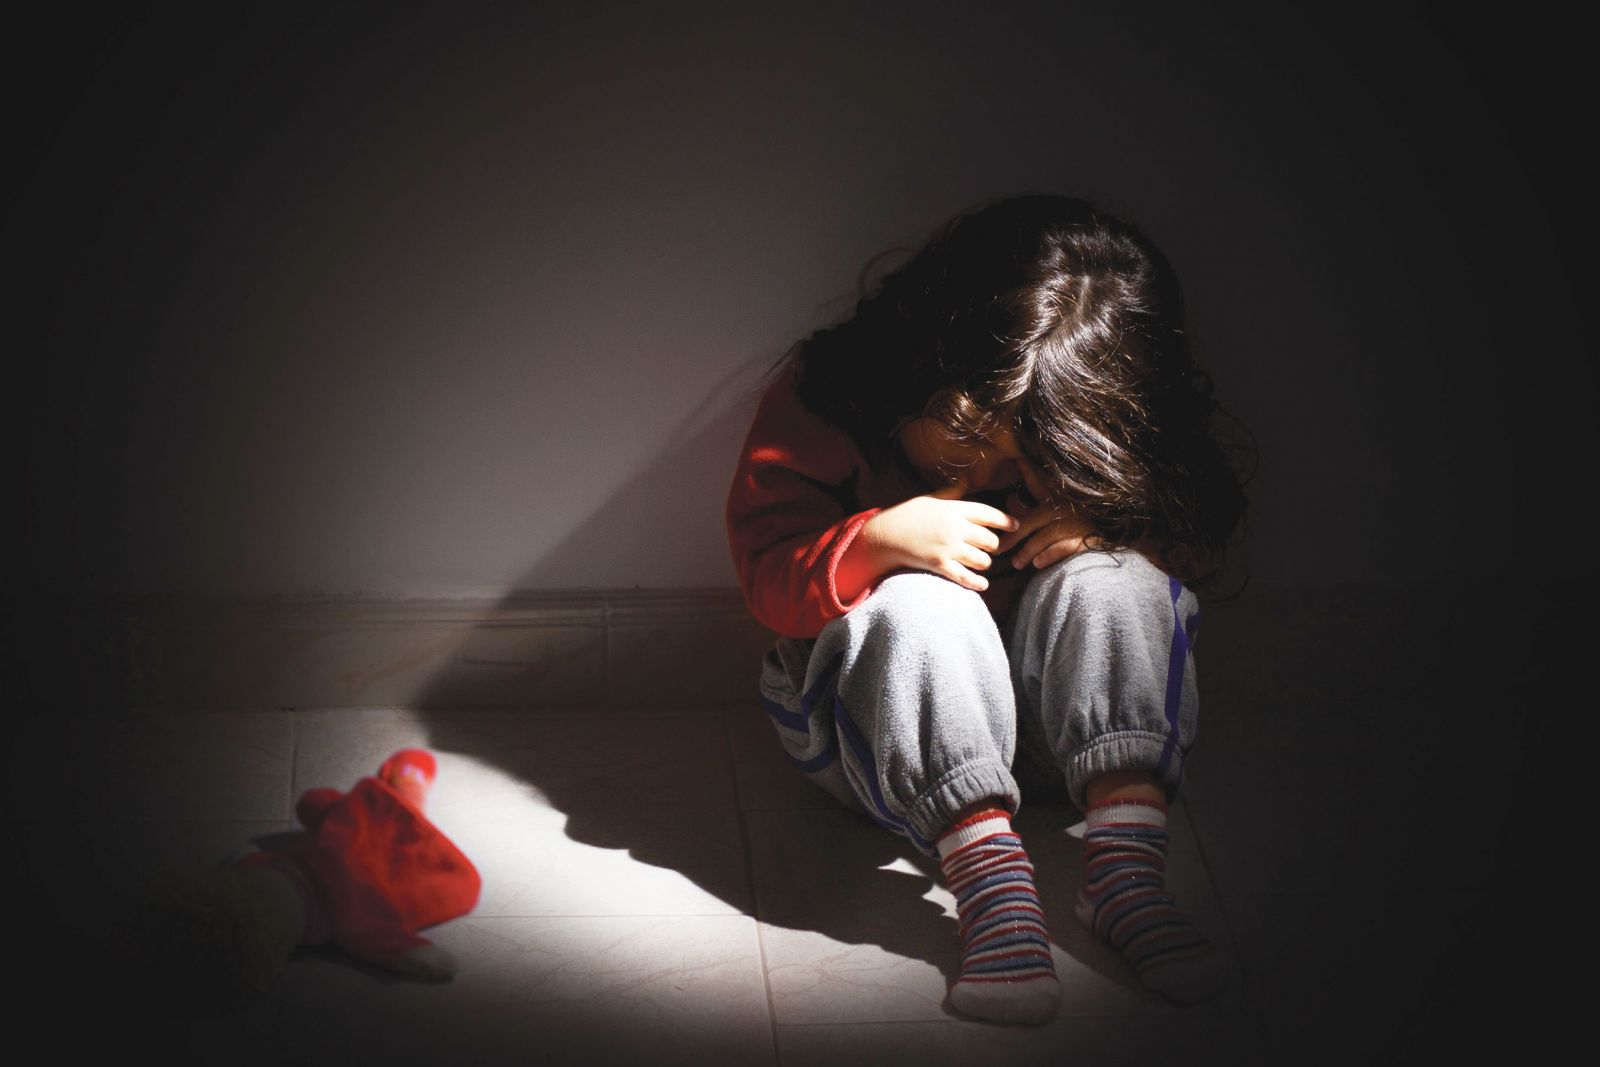 Should Childhood Trauma Be Treated As >> Past Trauma May Haunt Your Future Health Harvard Health